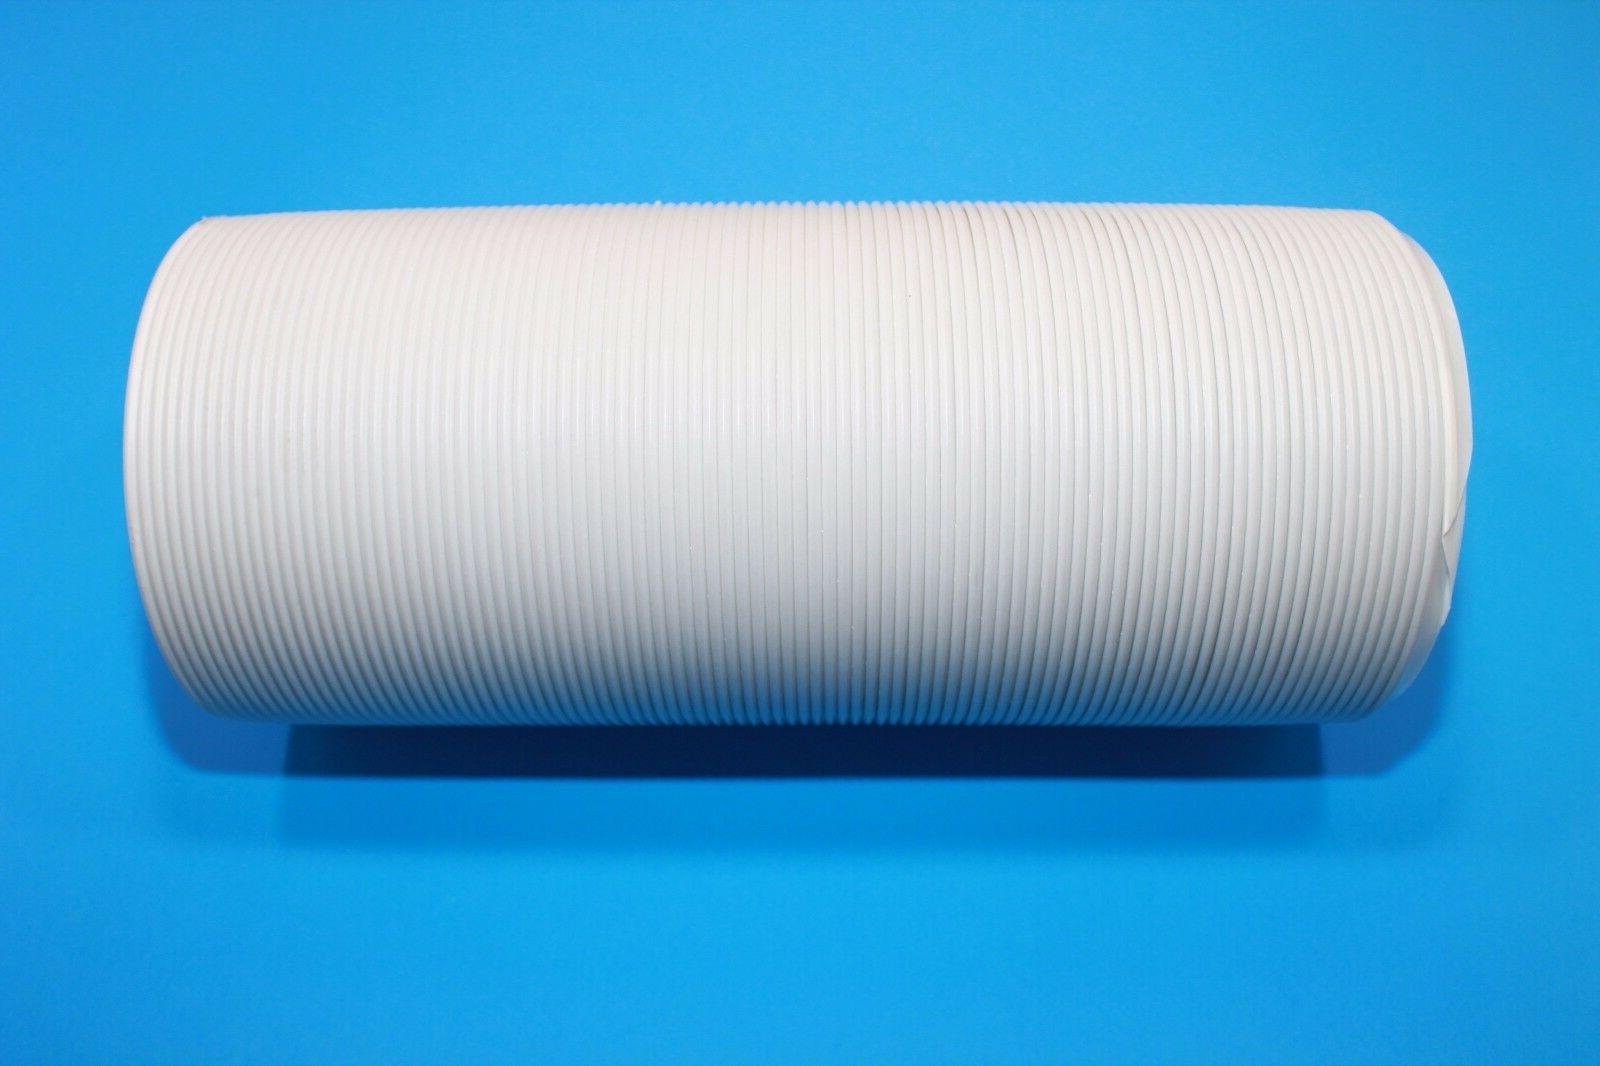 1 Extra long Universal Portable Air Conditioner Exhaust Hose